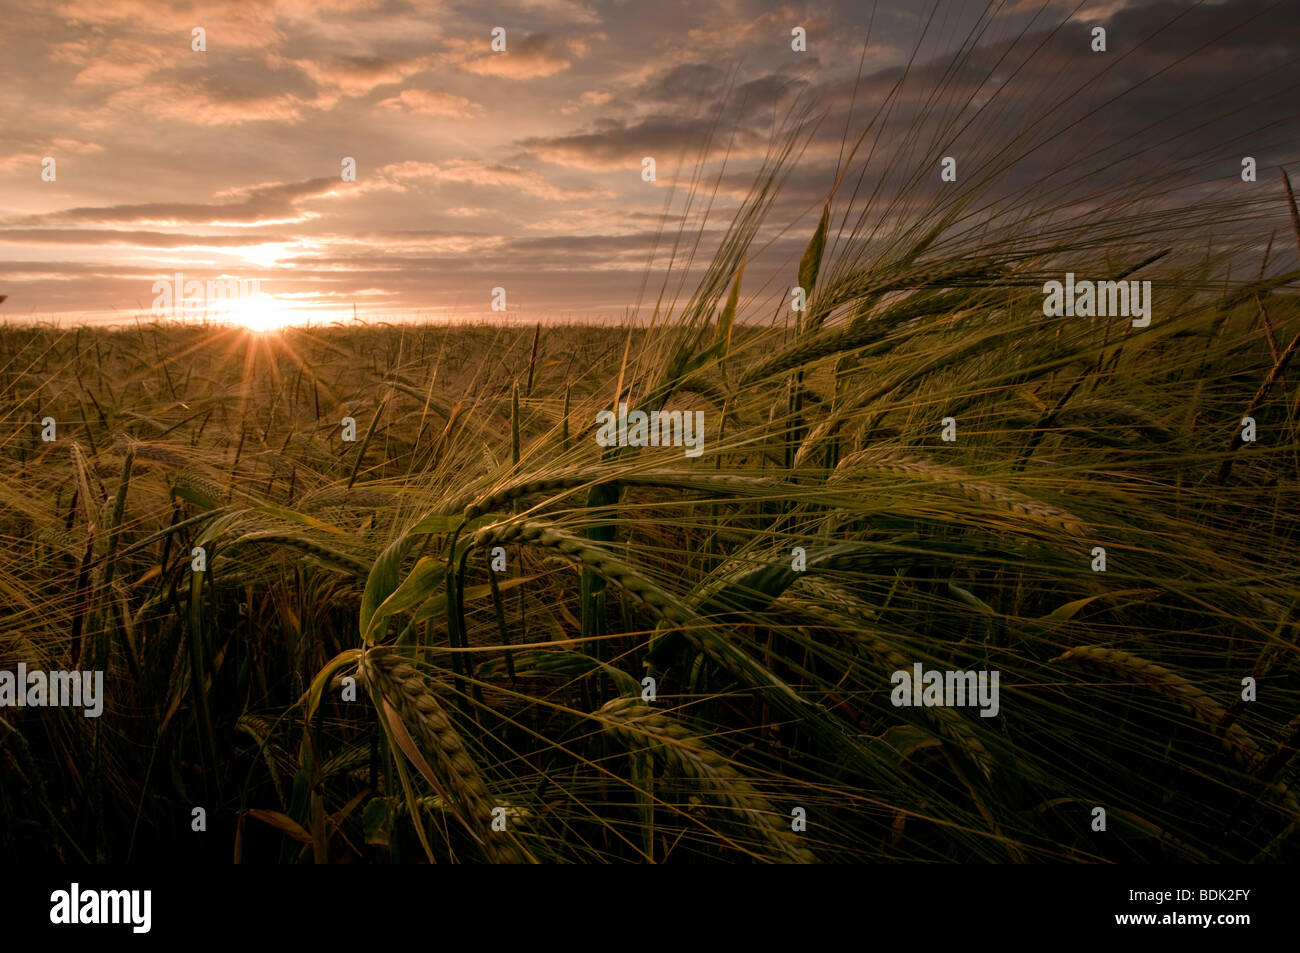 Barley corn growing in the South Downs, England - Stock Image